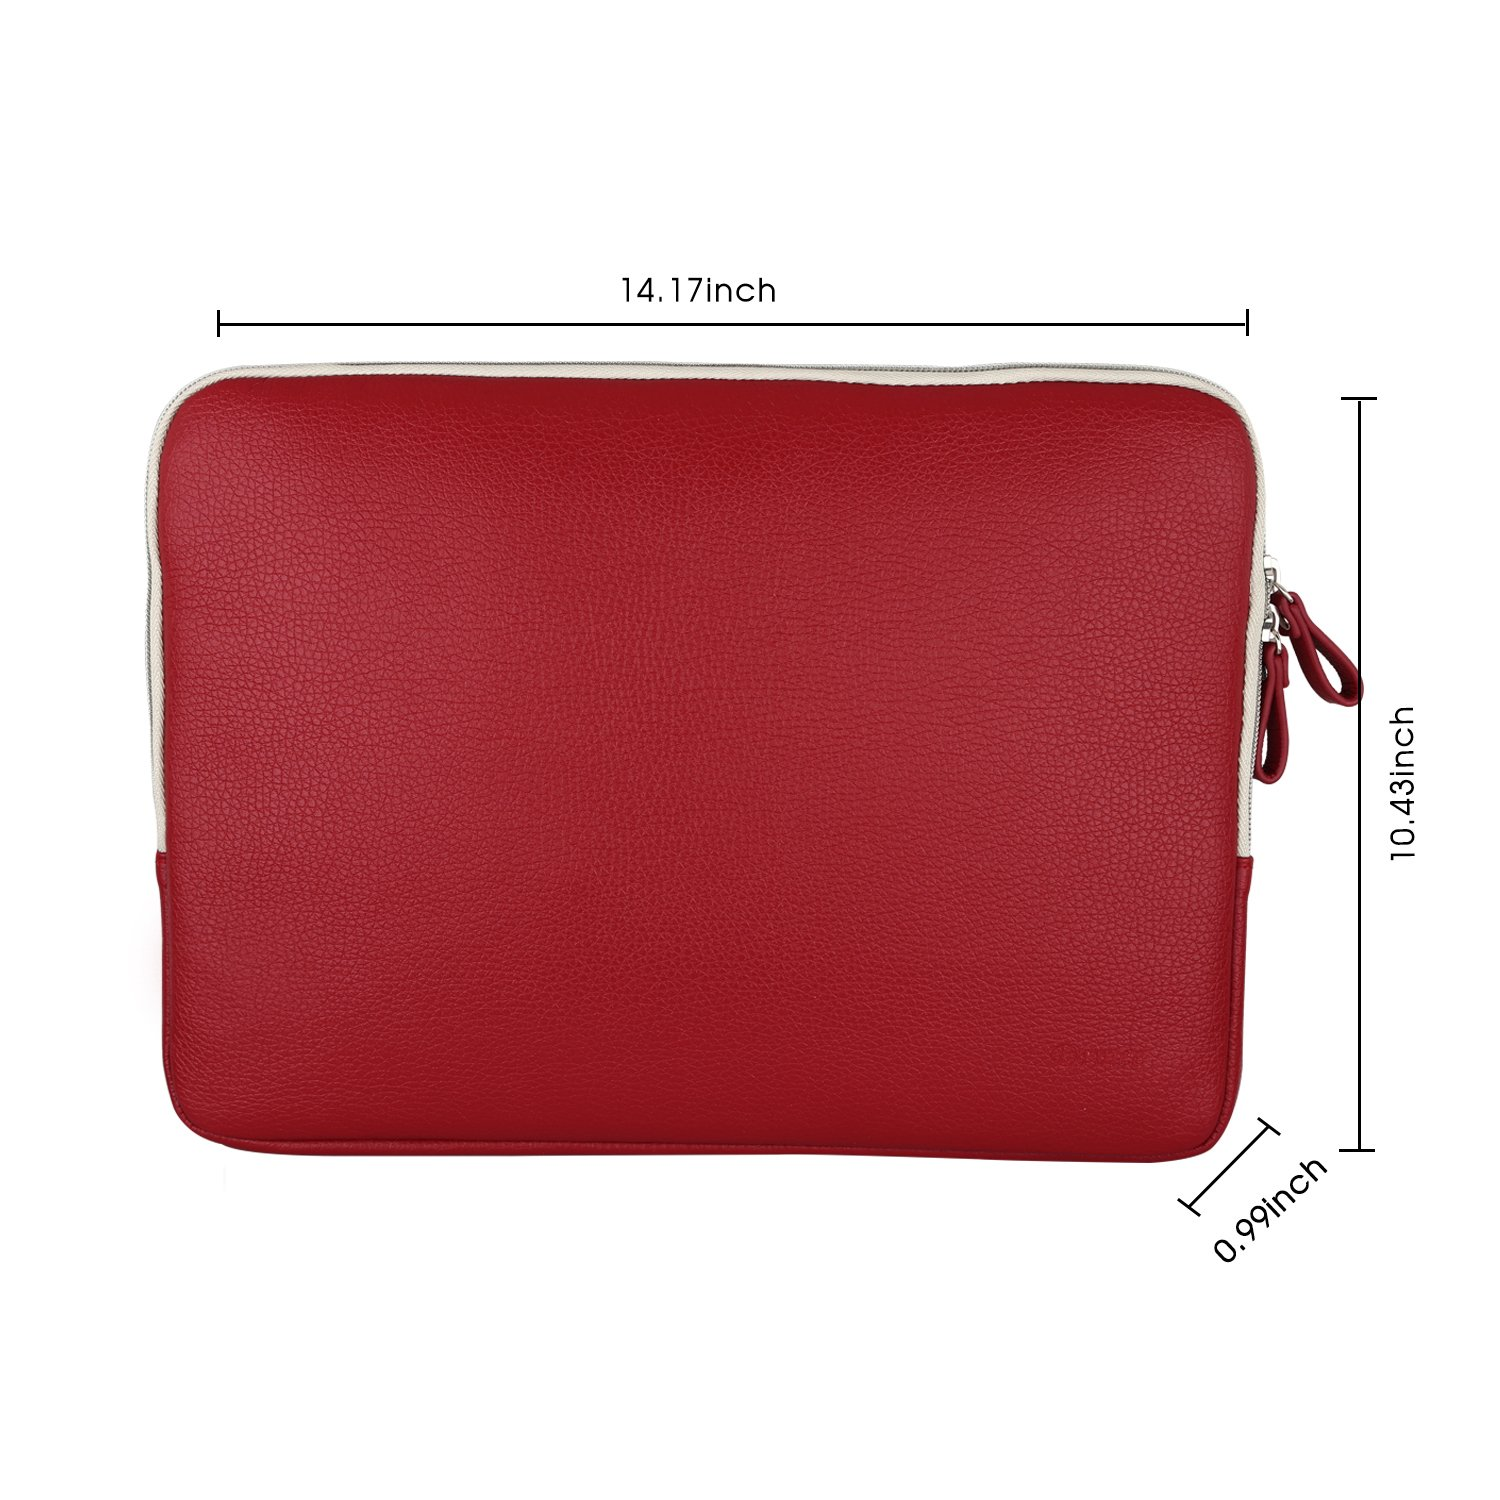 Laptop sleeve, Drmee 13 inch Macbook Air/ Macbook Pro / Pro Retina Sleeve Case Cover, Protective Bag Briefcases for Surface Laptop 2017, Red